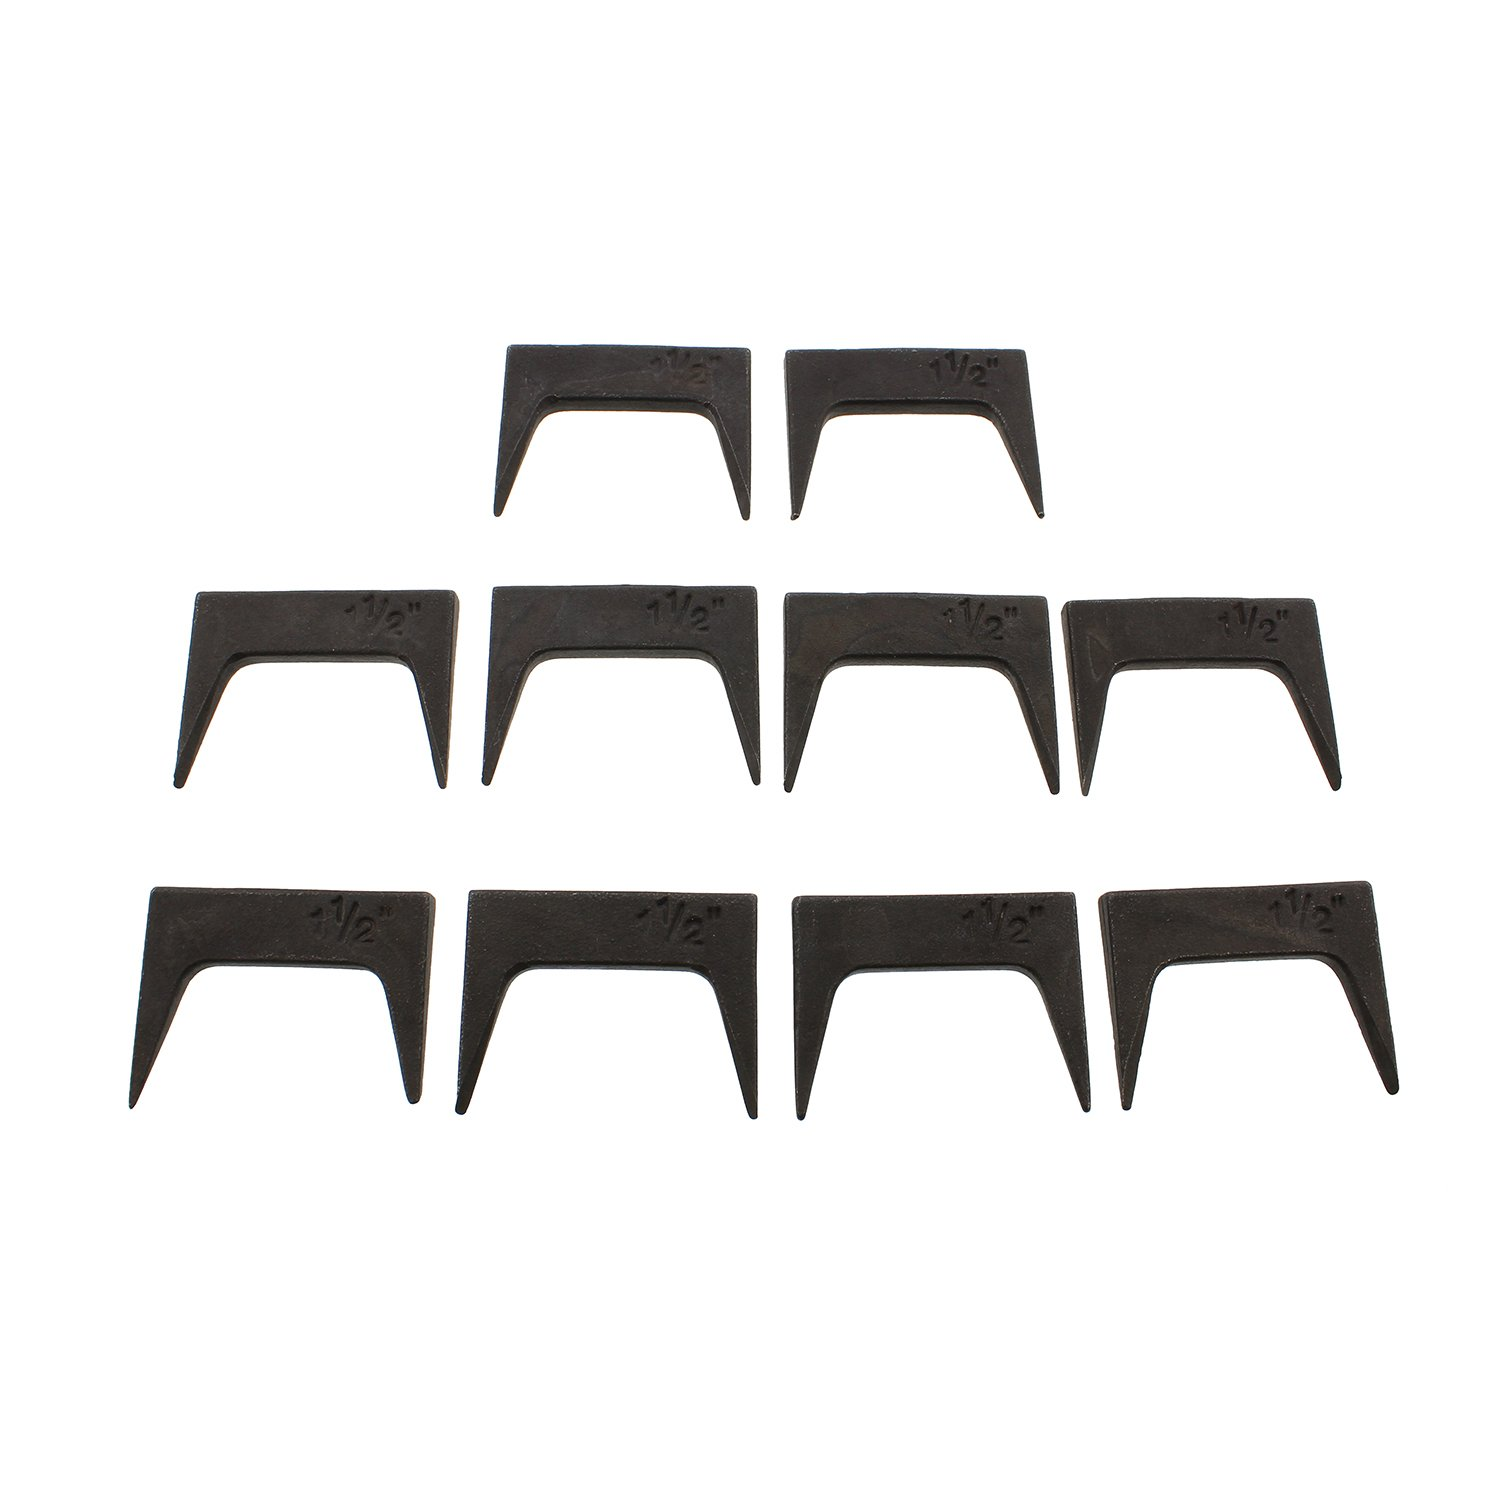 """DCT Wood Clamps, 1.5"""" Inch Pinch Clamp Pinch Dog 10-Piece Set for Woodworking Wood Glue Up Gluing Table Panel Pinch Dogs"""